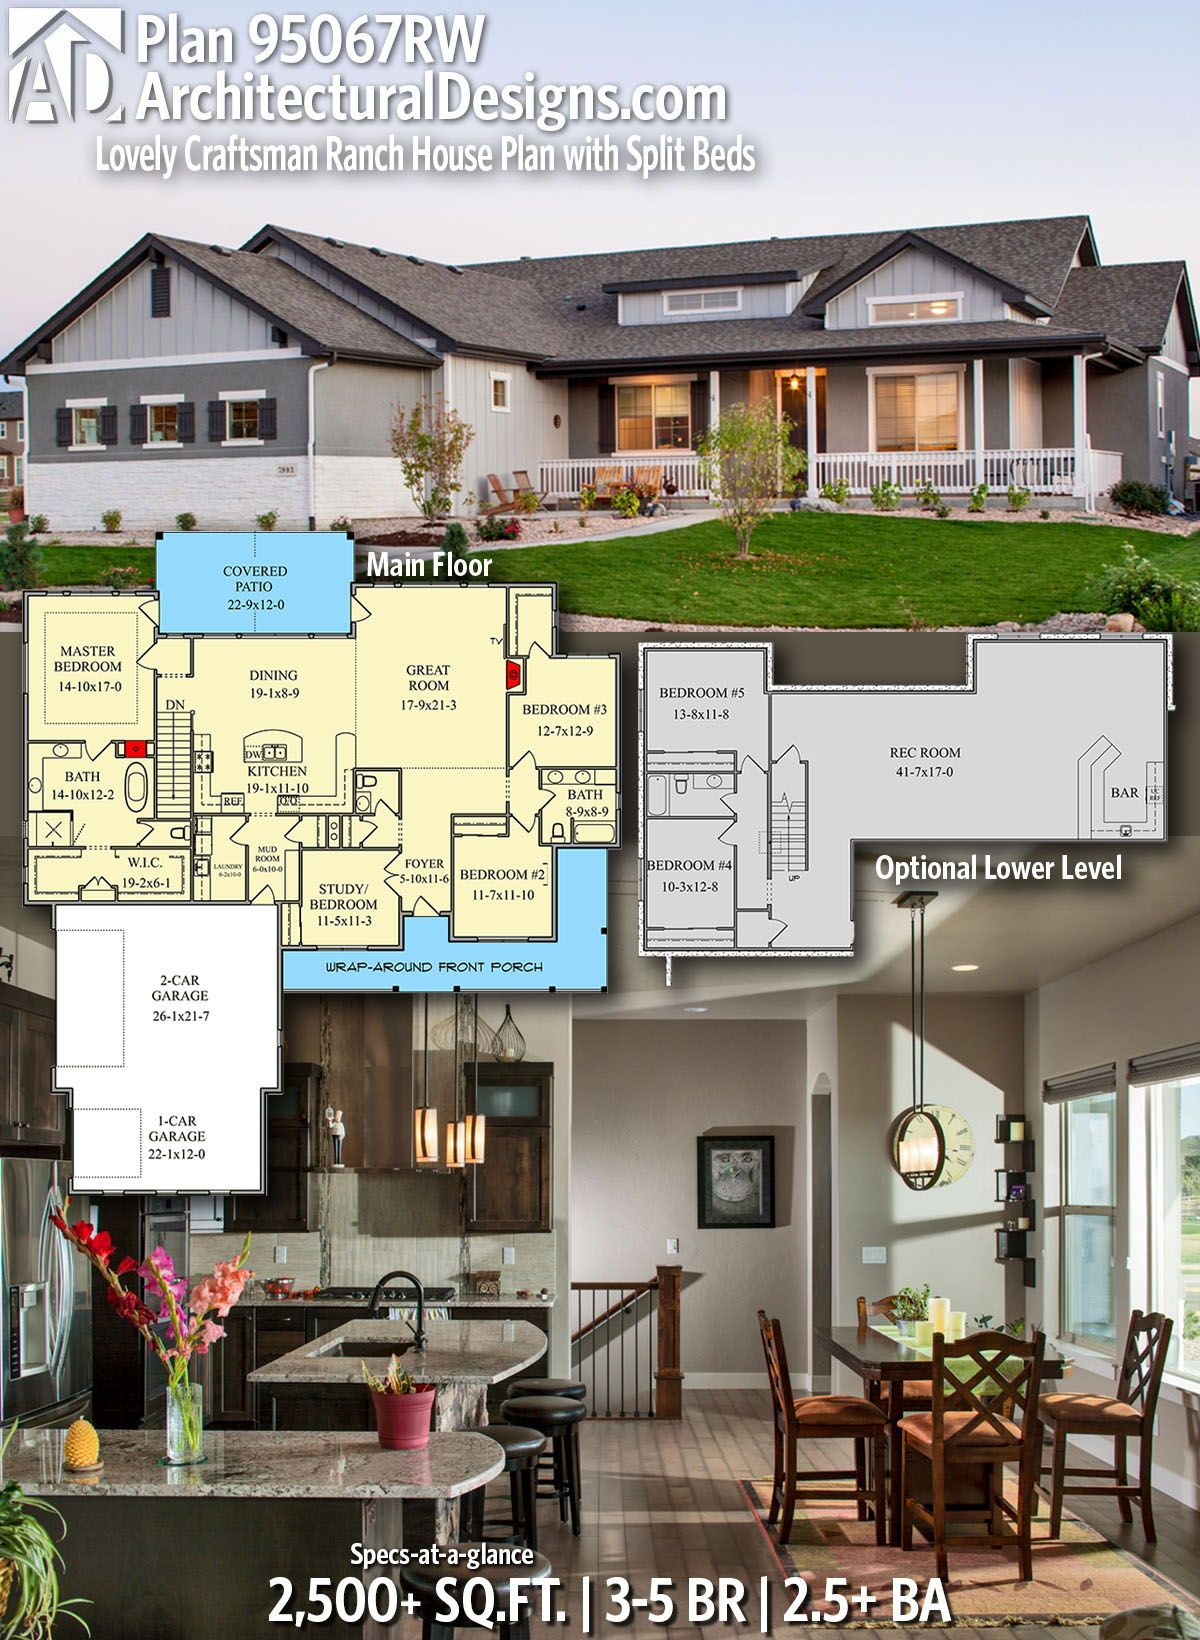 Plan 95067rw Lovely Craftsman Ranch House Plan With Split Beds Craftsman House Plans Ranch House Plan Dream House Plans